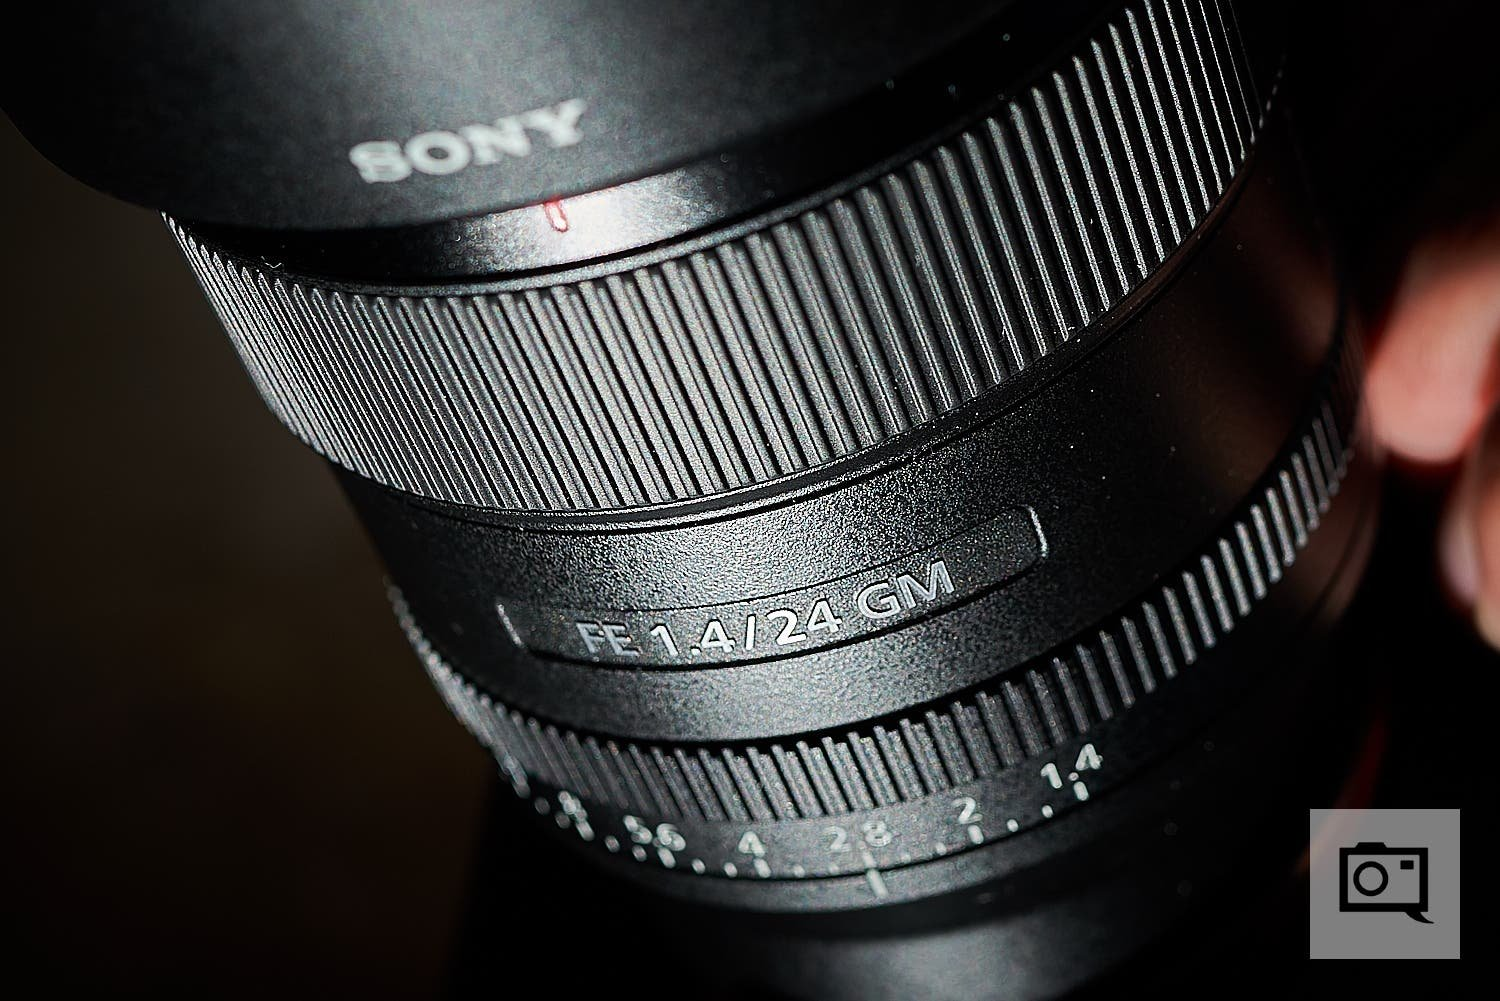 Review: Sony 24mm f1.4 G Master (Sony FE Mount)